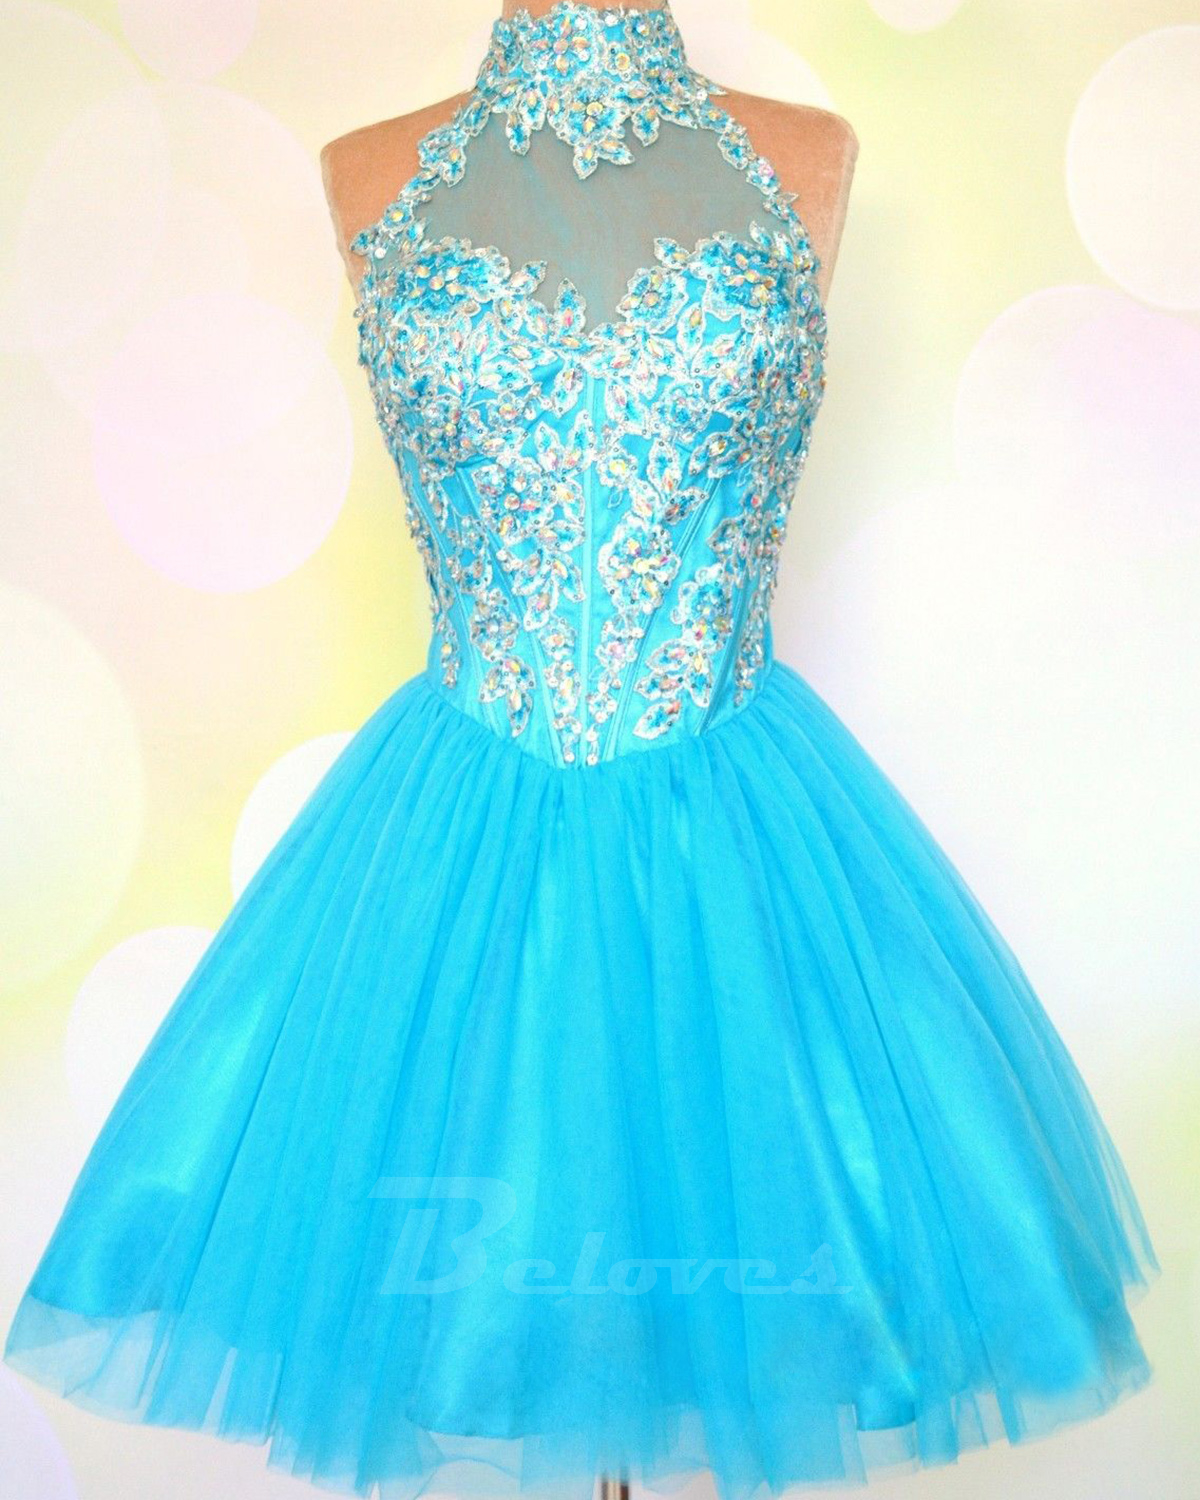 Blue Tulle High Neck Cocktail Dress With Keyhole Back